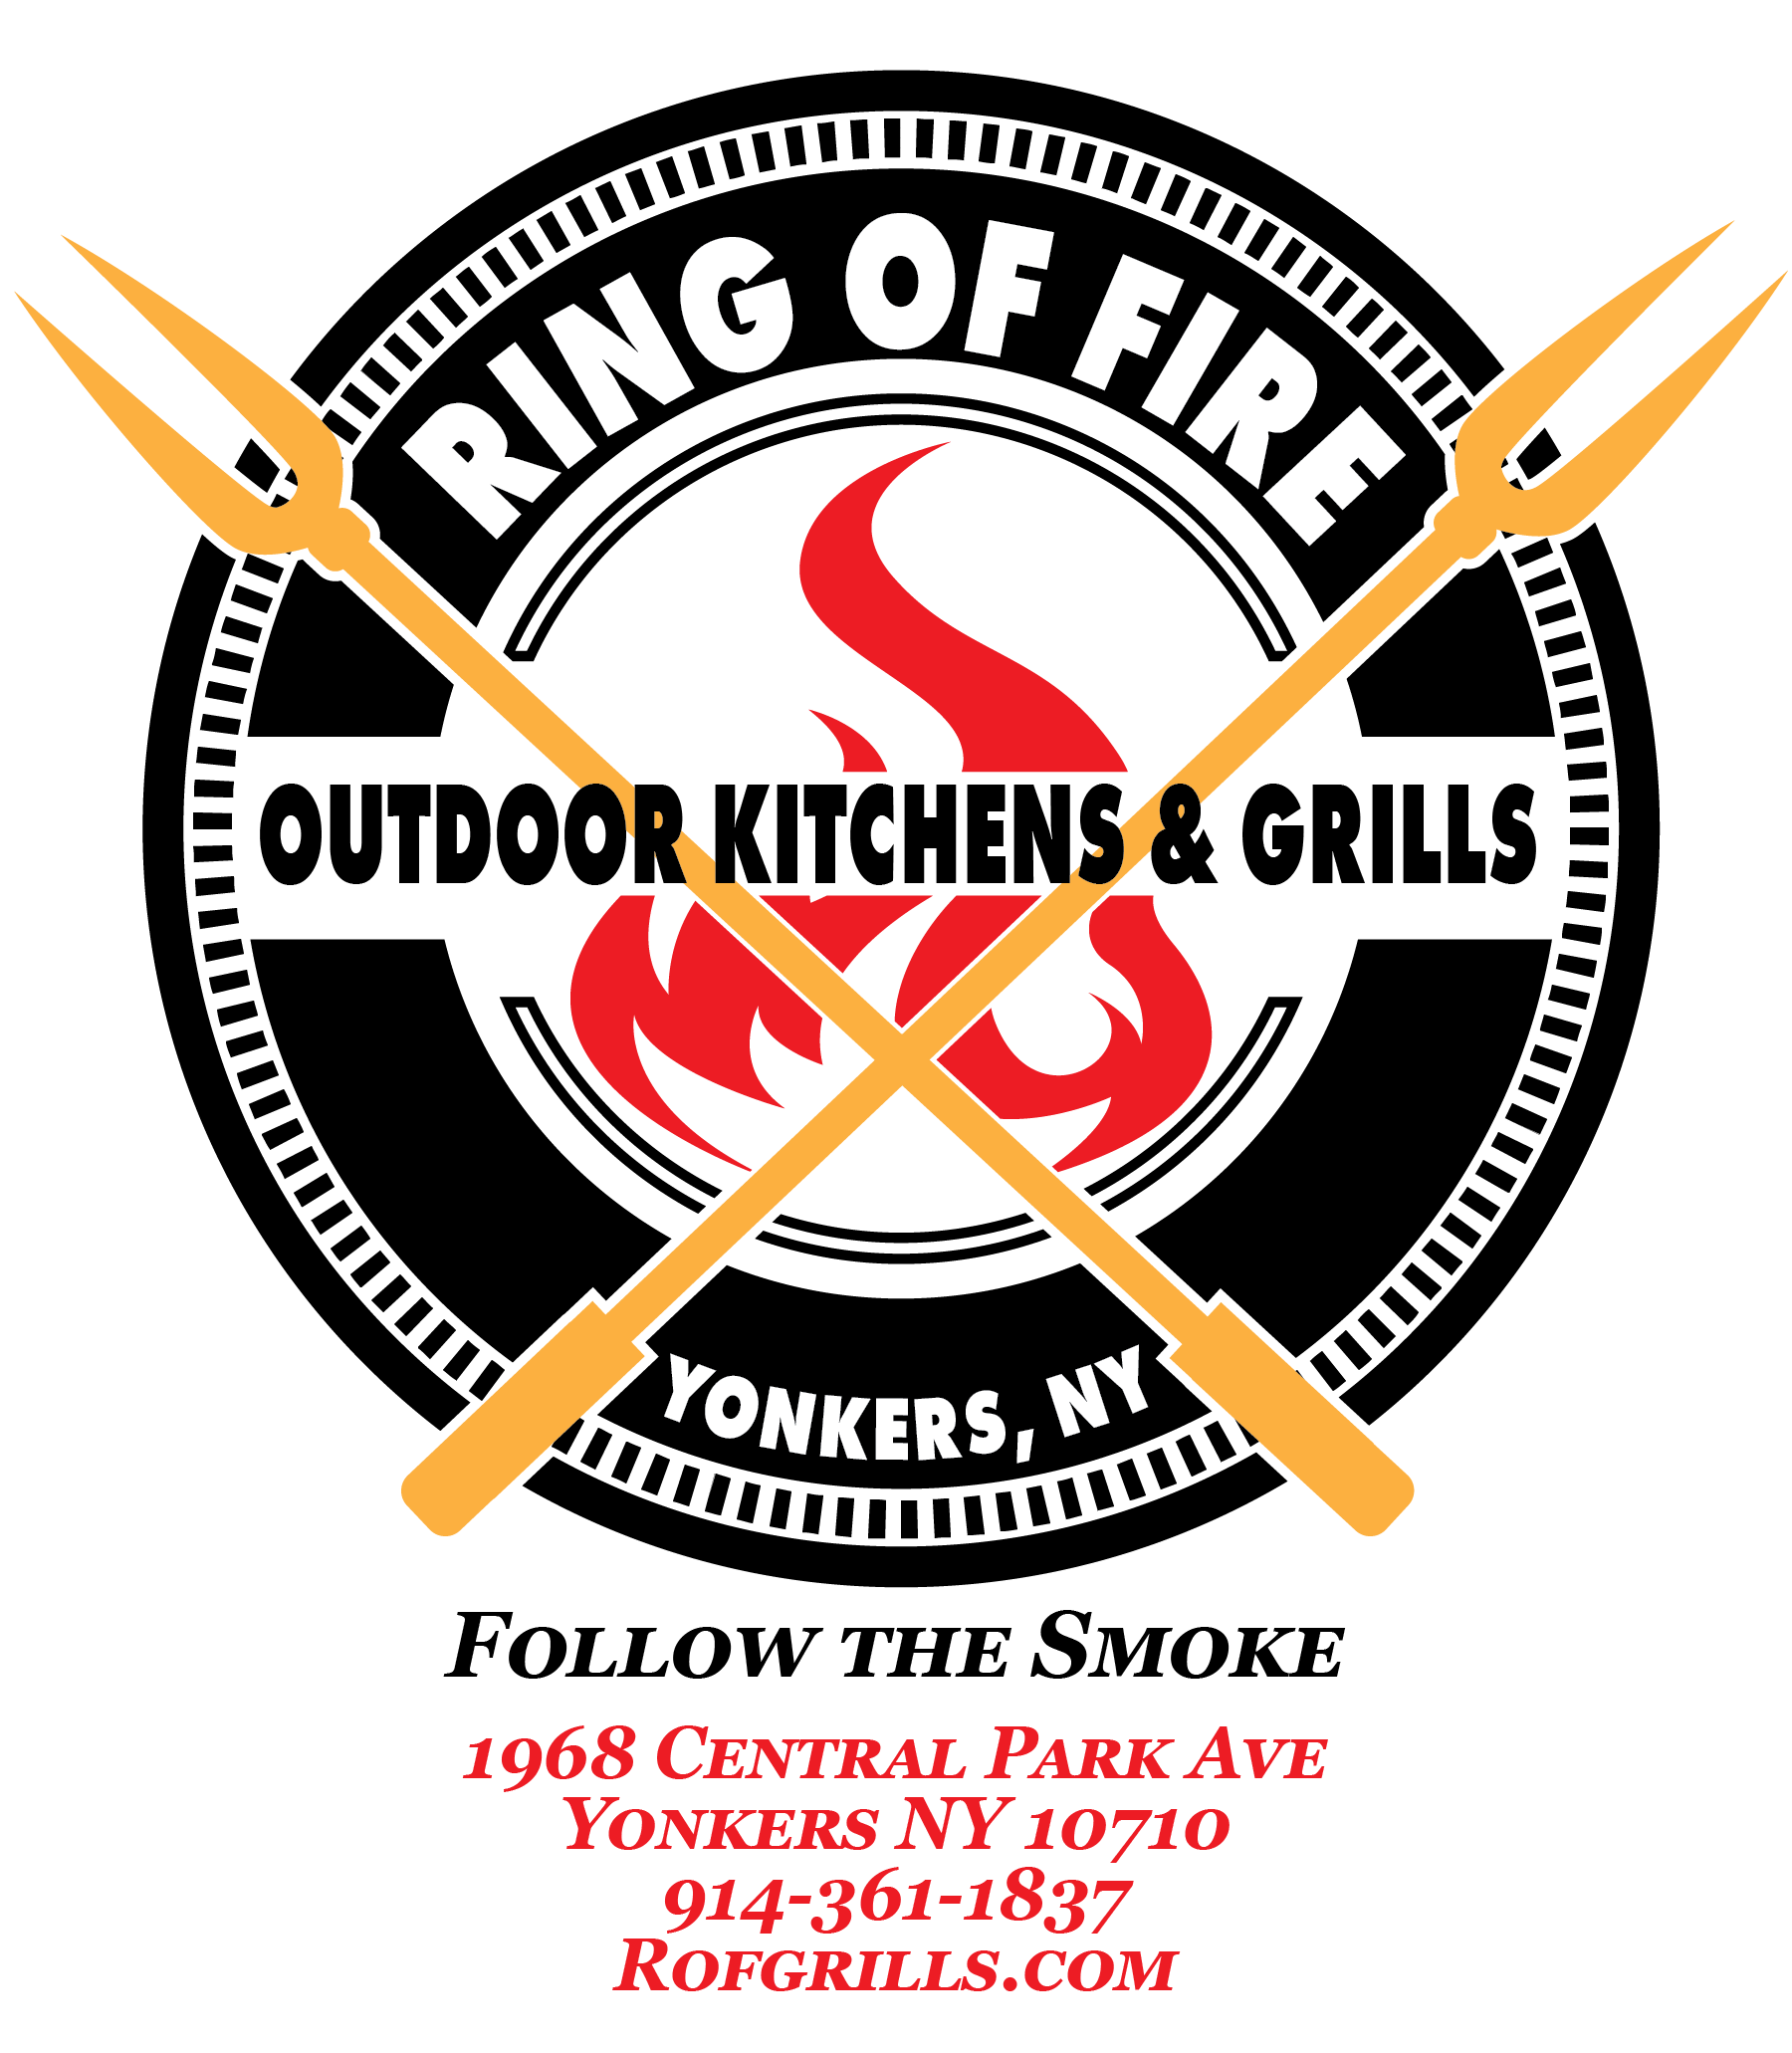 Ring of Fire Outdoor Kitchens & Grills logo